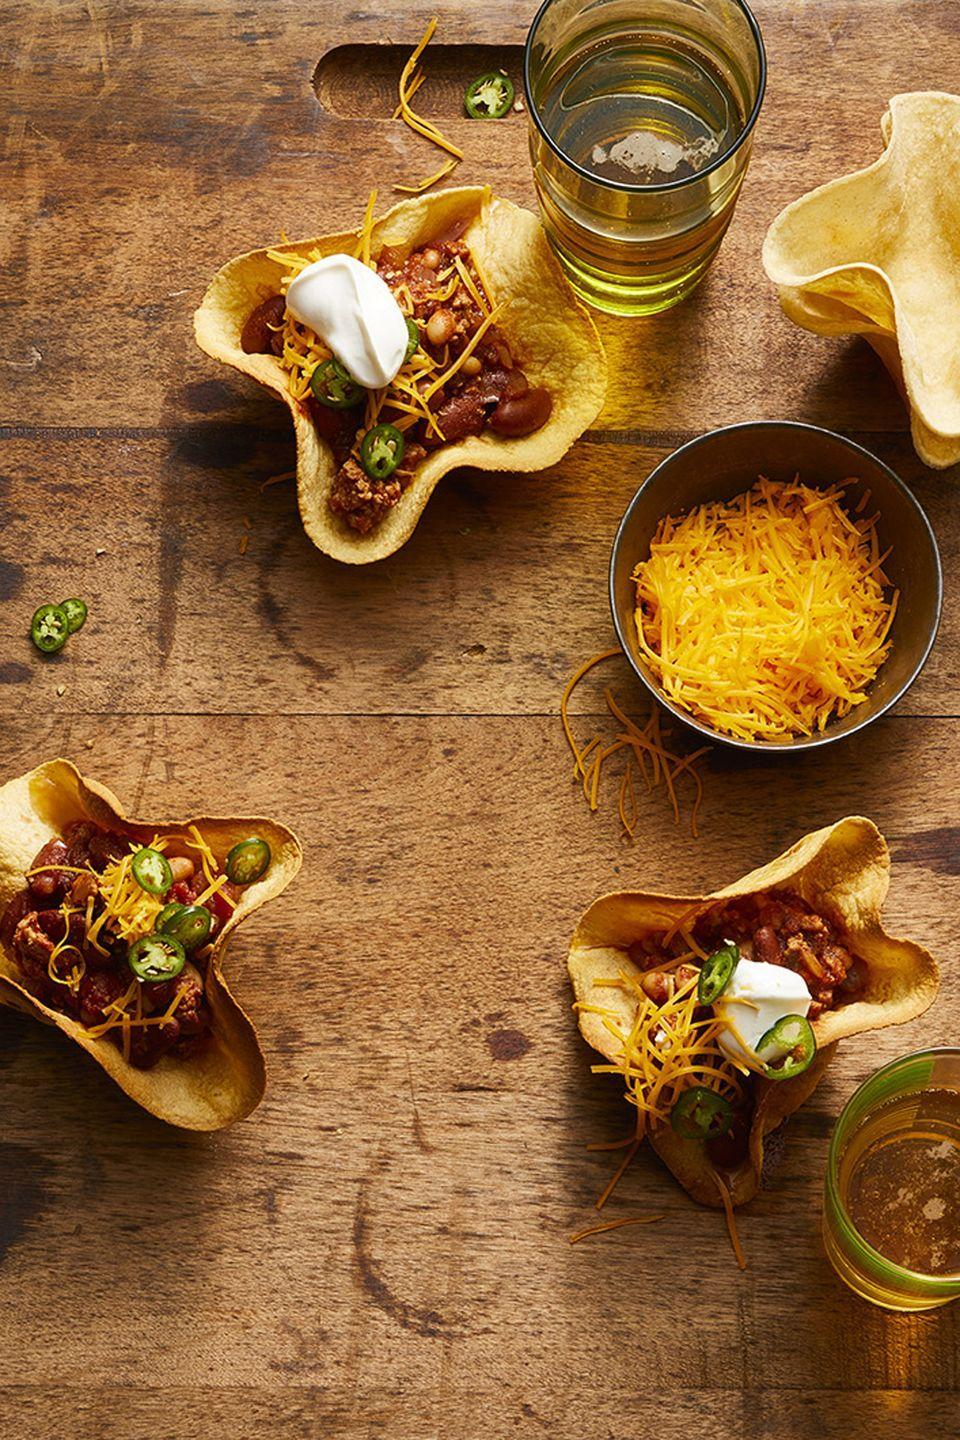 "<p>The Super Bowl is not the time to do dishes, which is why these tortilla bowls come in handy.</p><p><em><a href=""https://www.goodhousekeeping.com/food-recipes/a47668/smoky-maple-turkey-chili-recipe/"" rel=""nofollow noopener"" target=""_blank"" data-ylk=""slk:Get the recipe for Smoky Maple Turkey Chili »"" class=""link rapid-noclick-resp"">Get the recipe for Smoky Maple Turkey Chili »</a></em></p>"